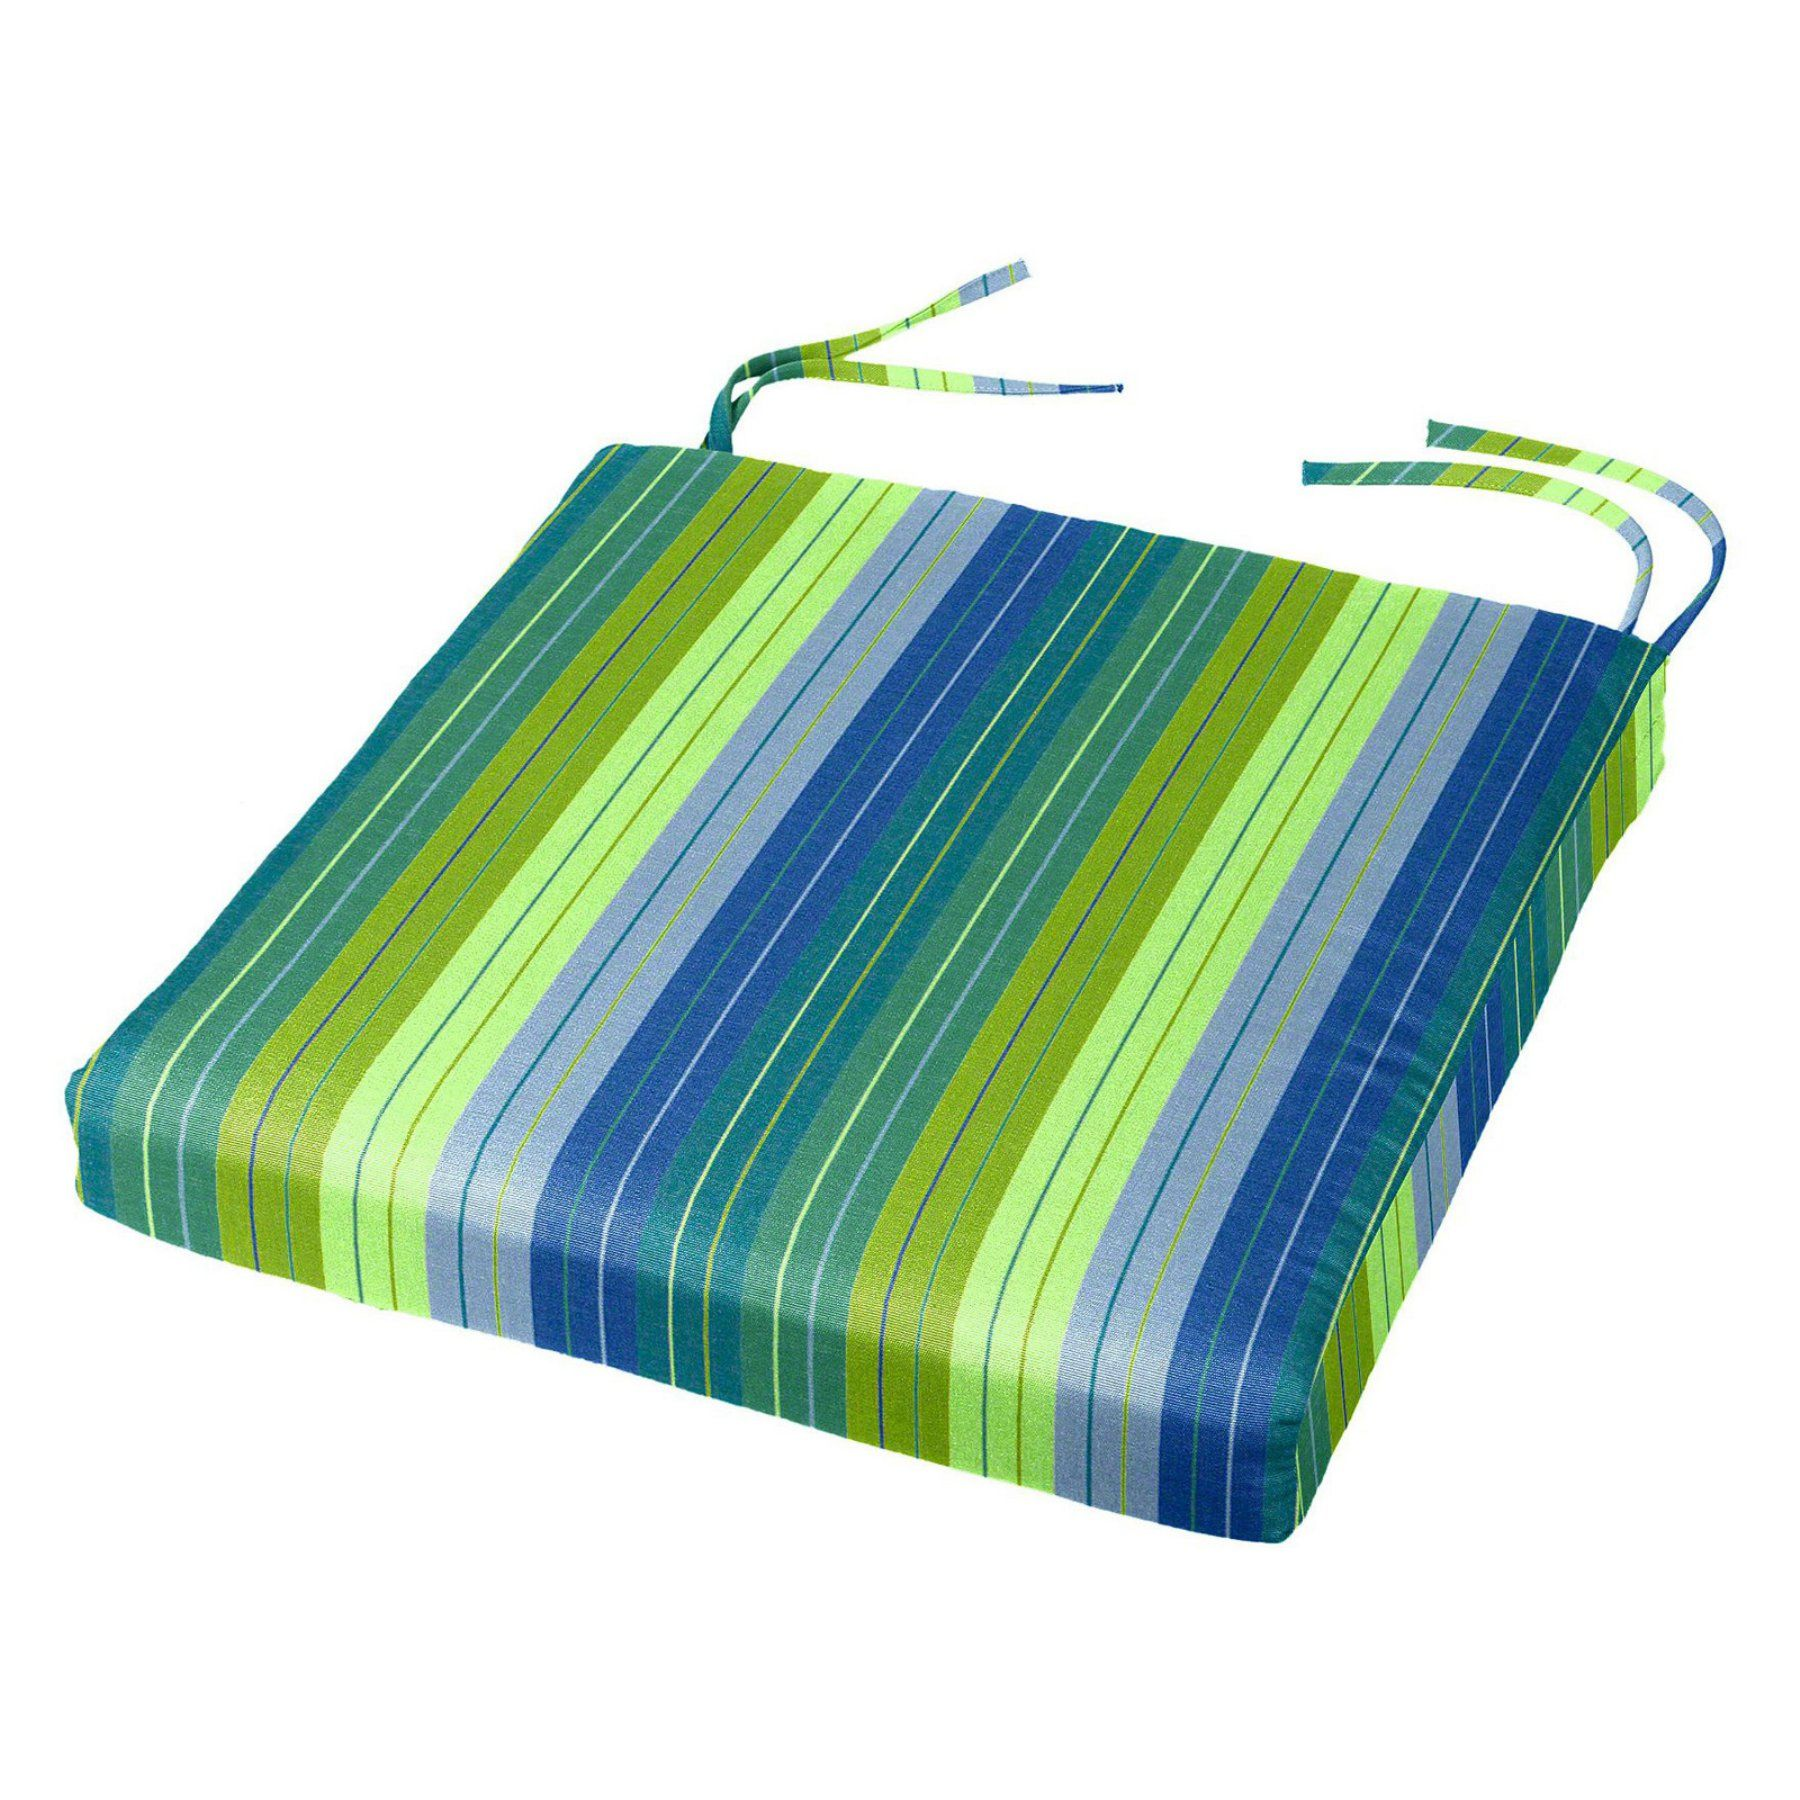 Cushion Source 17.5 X 16 In. Striped Sunbrella Chair Pad   CFWGN 5606